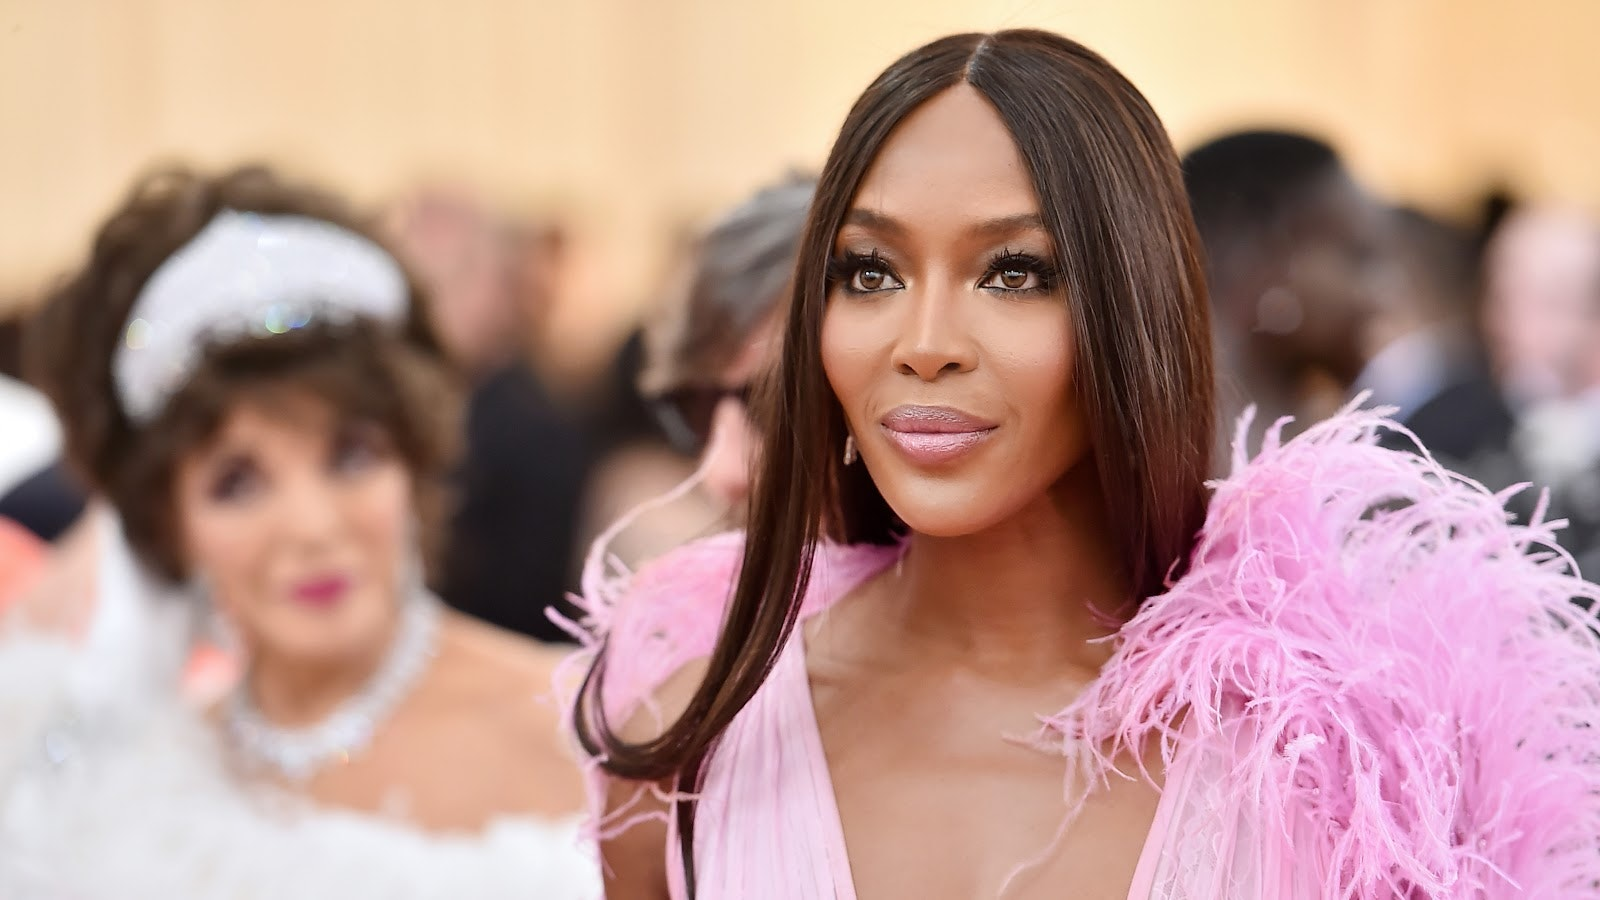 Jennifer Lopez, Gwyneth Paltrow, and More Stars Over 40 Who Dazzled at the 2019 Met Gala